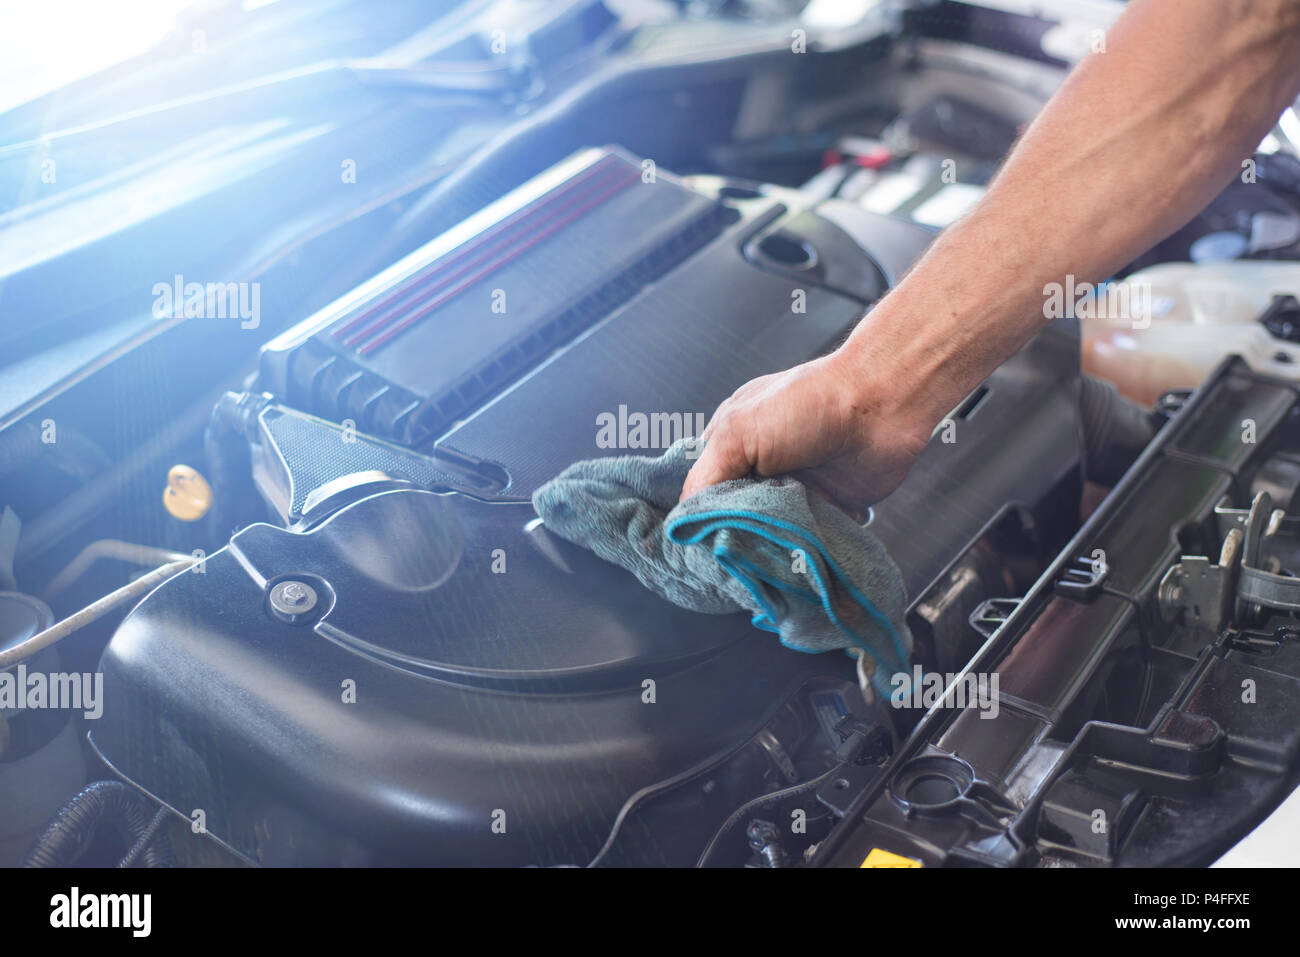 Mechanic cleaning car engine - Stock Image